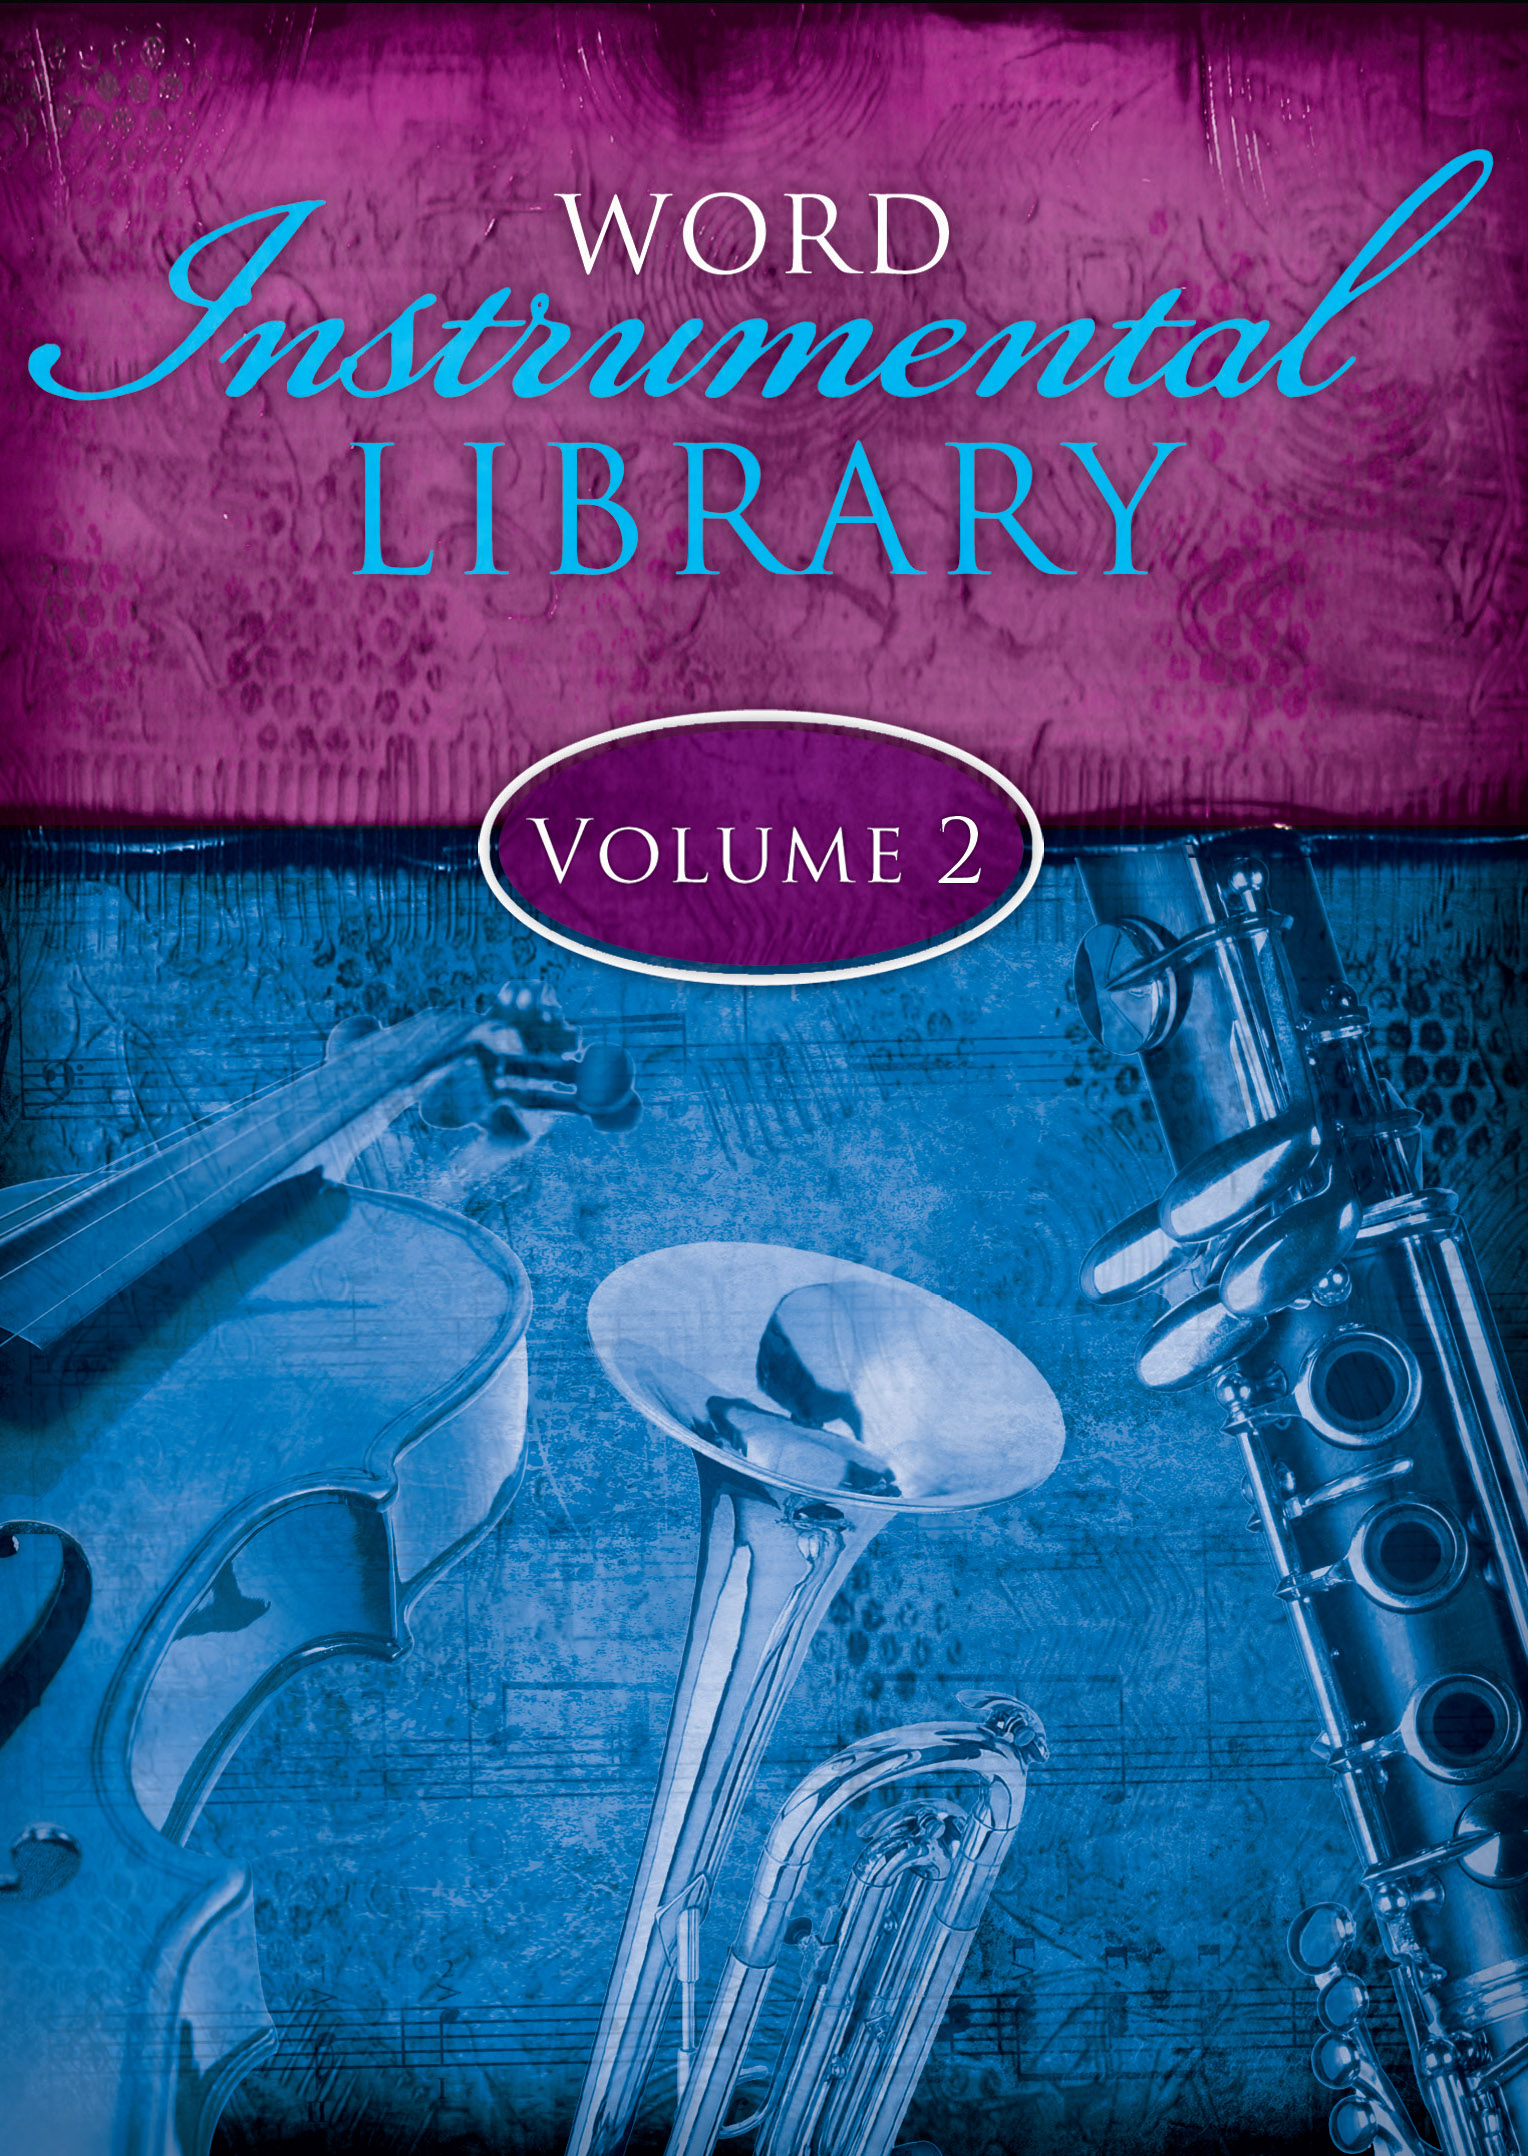 Word Instrumental Library, Volume 2